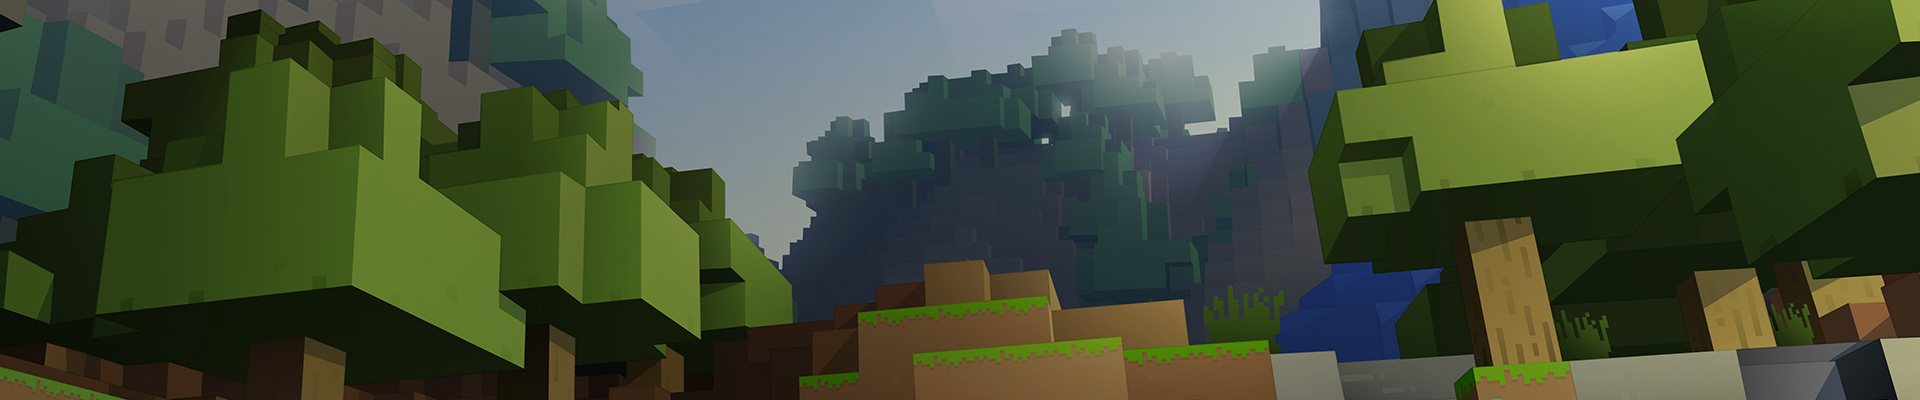 Minecraft game art illustration of a daytime world.